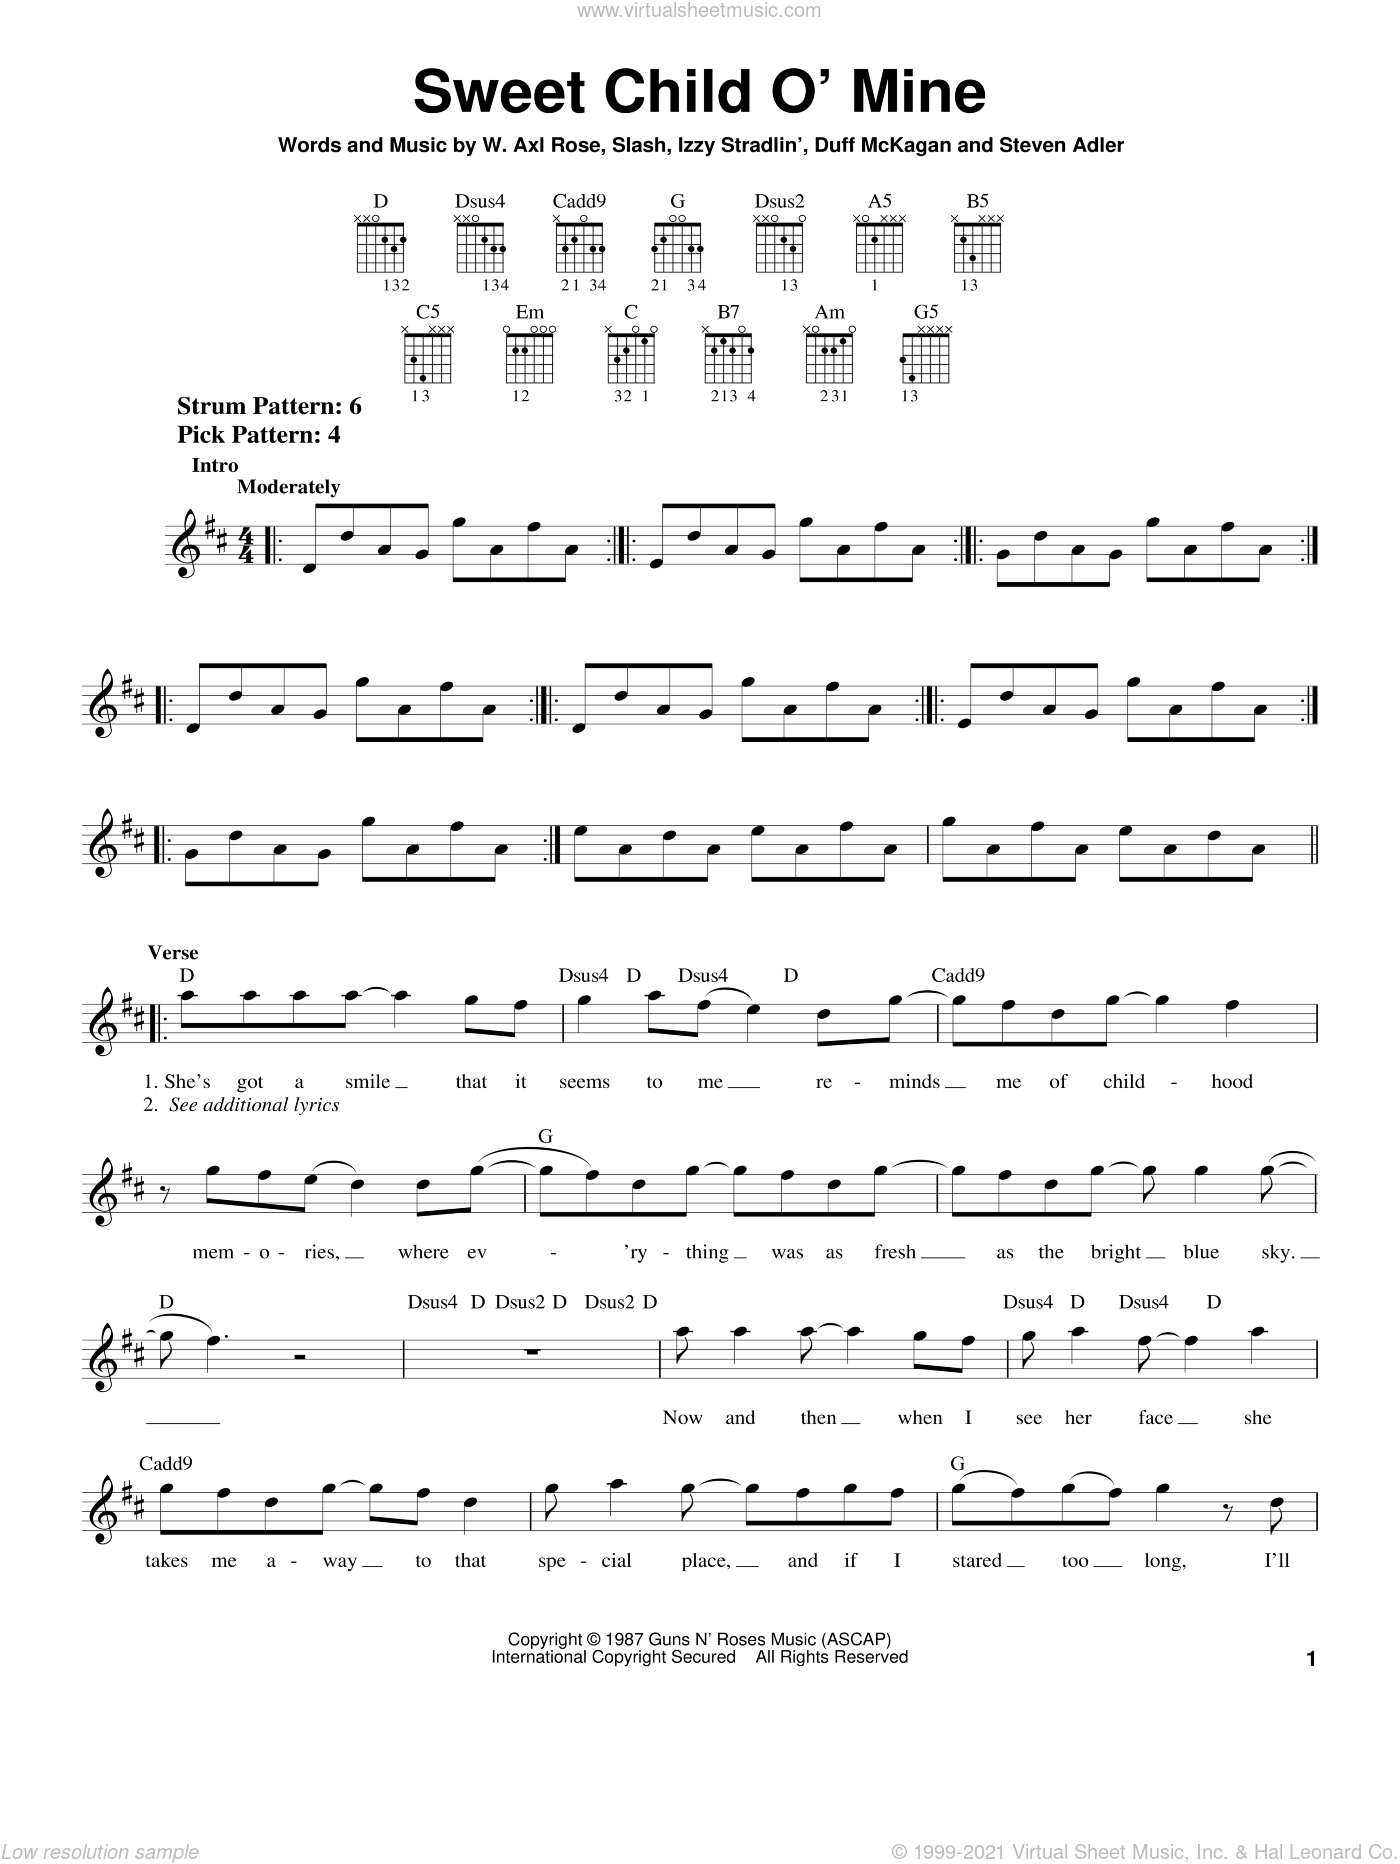 Sweet Child O' Mine sheet music for guitar solo (chords) by Guns N' Roses, Axl Rose, Duff McKagan, Slash and Steven Adler, easy guitar (chords)